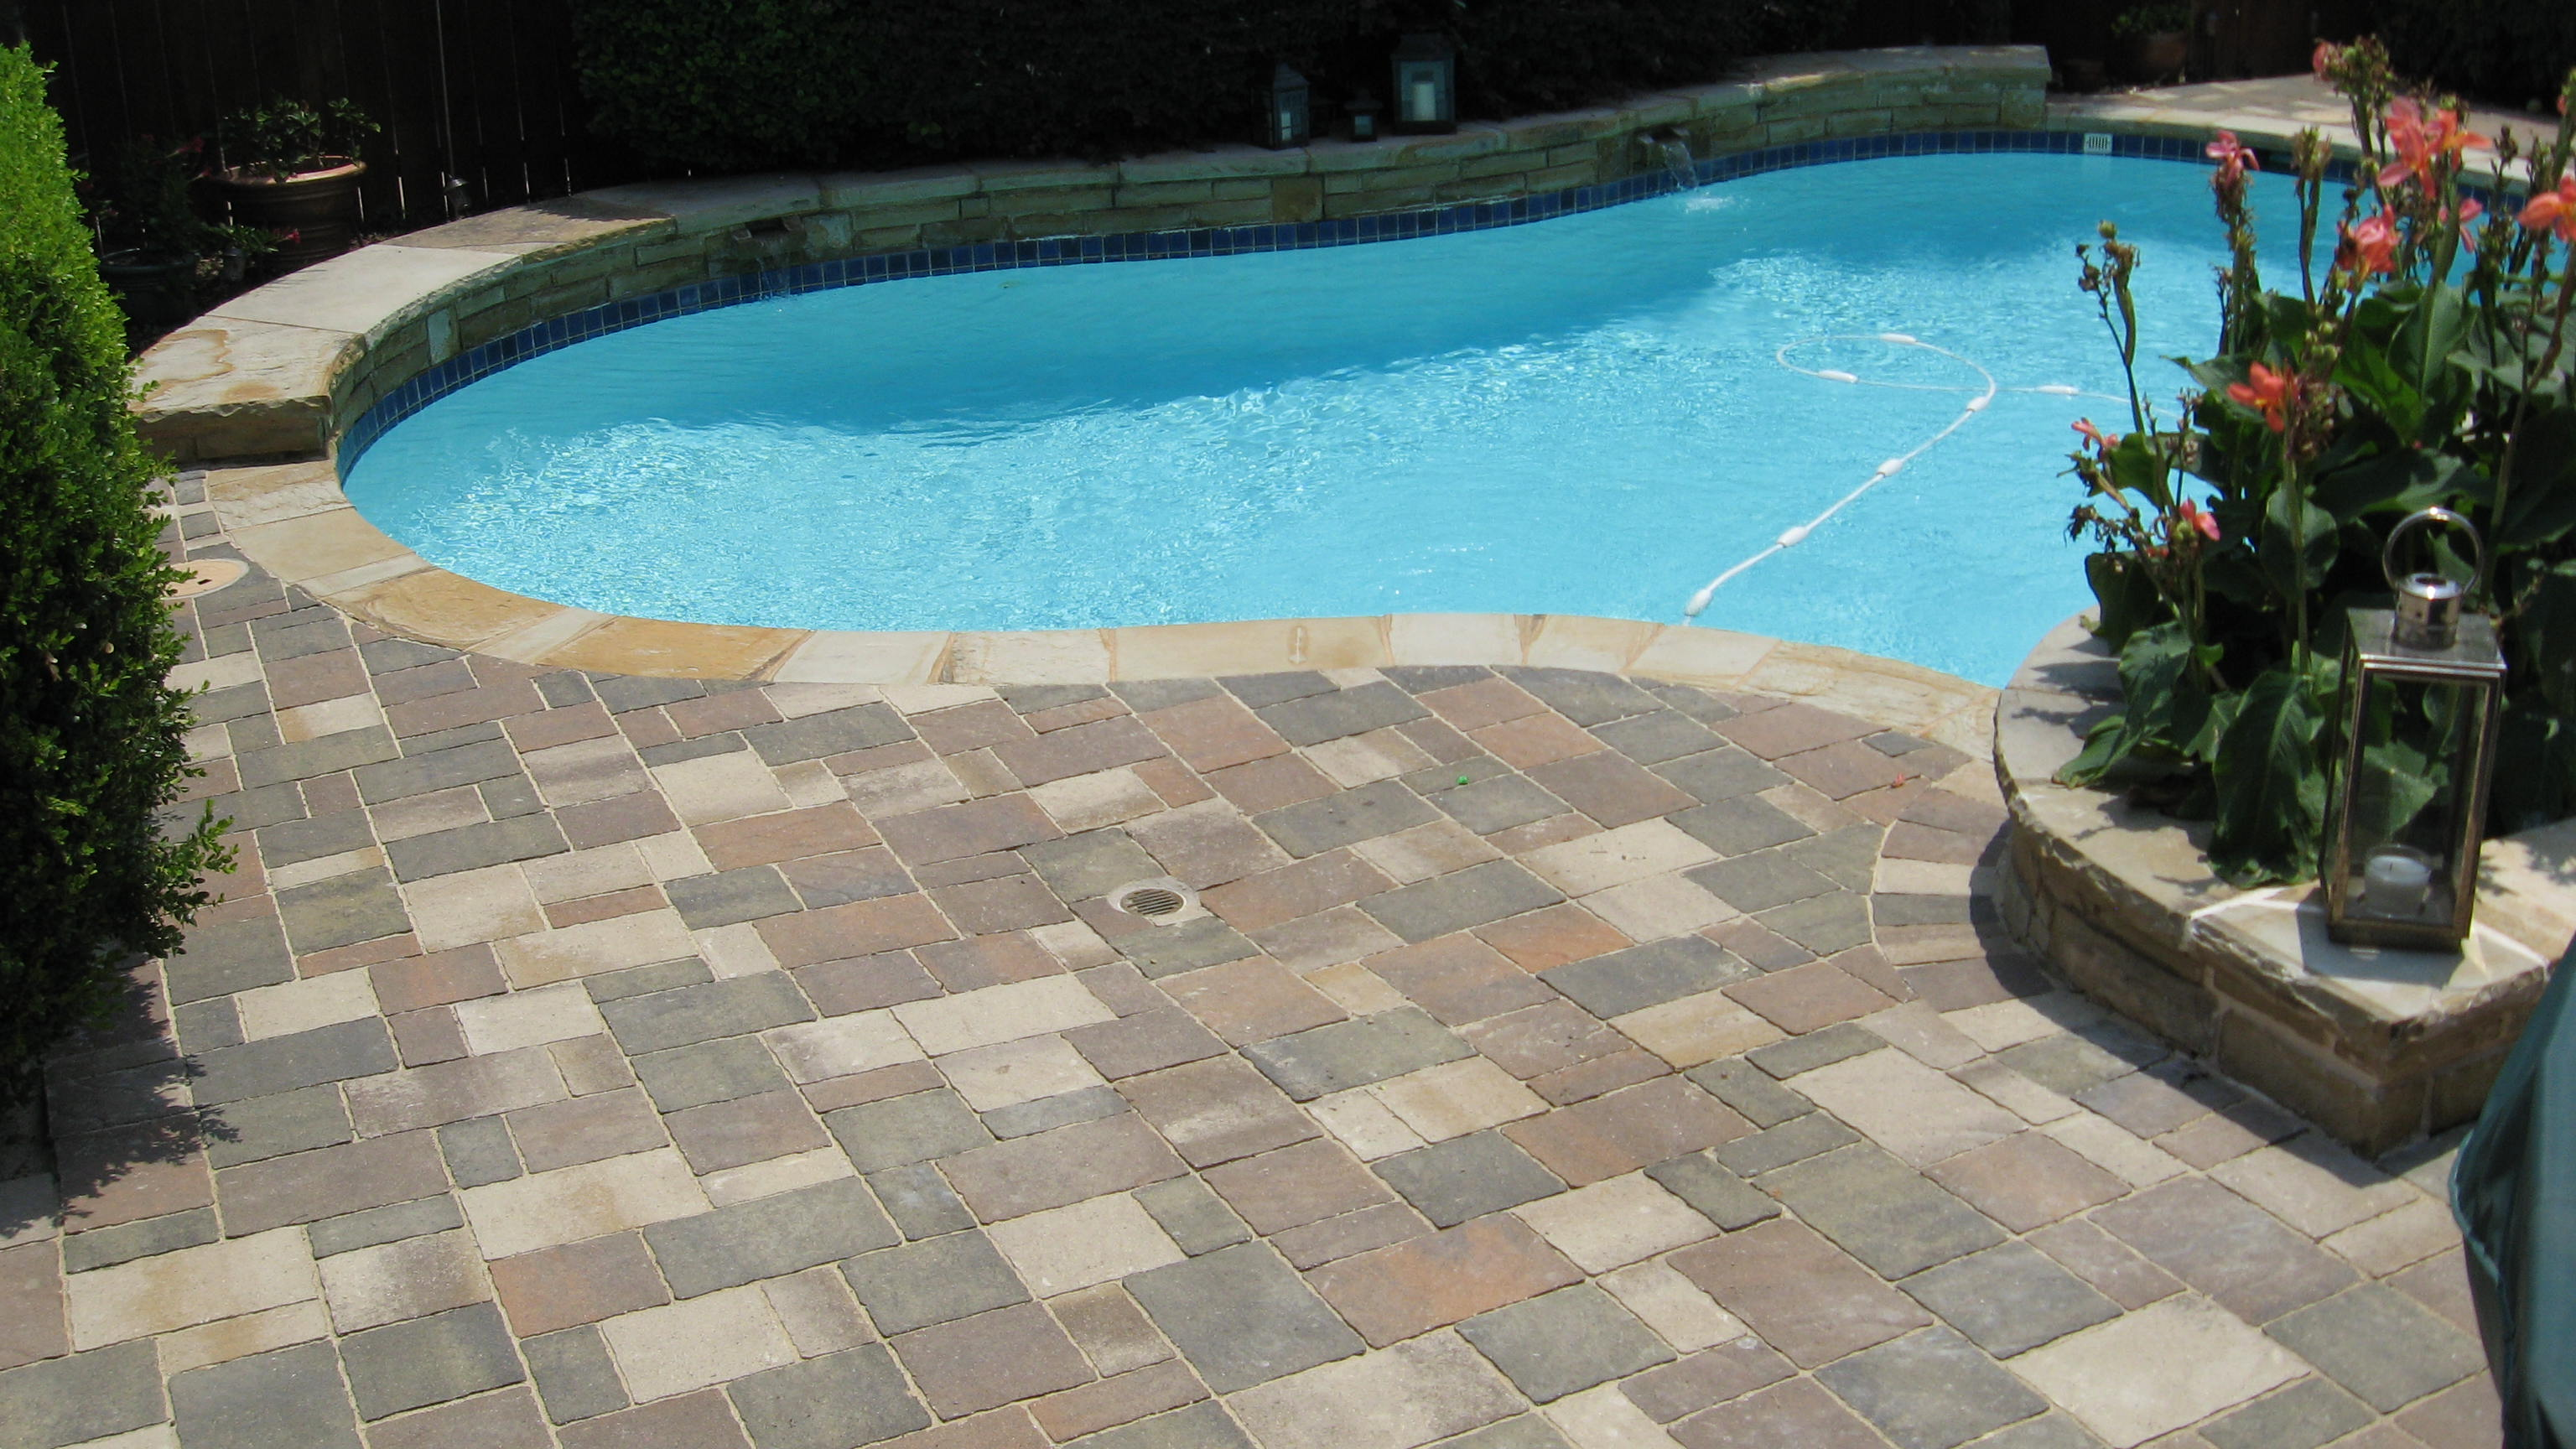 Pool decks legacy custom pavers for Best pavers for pool deck